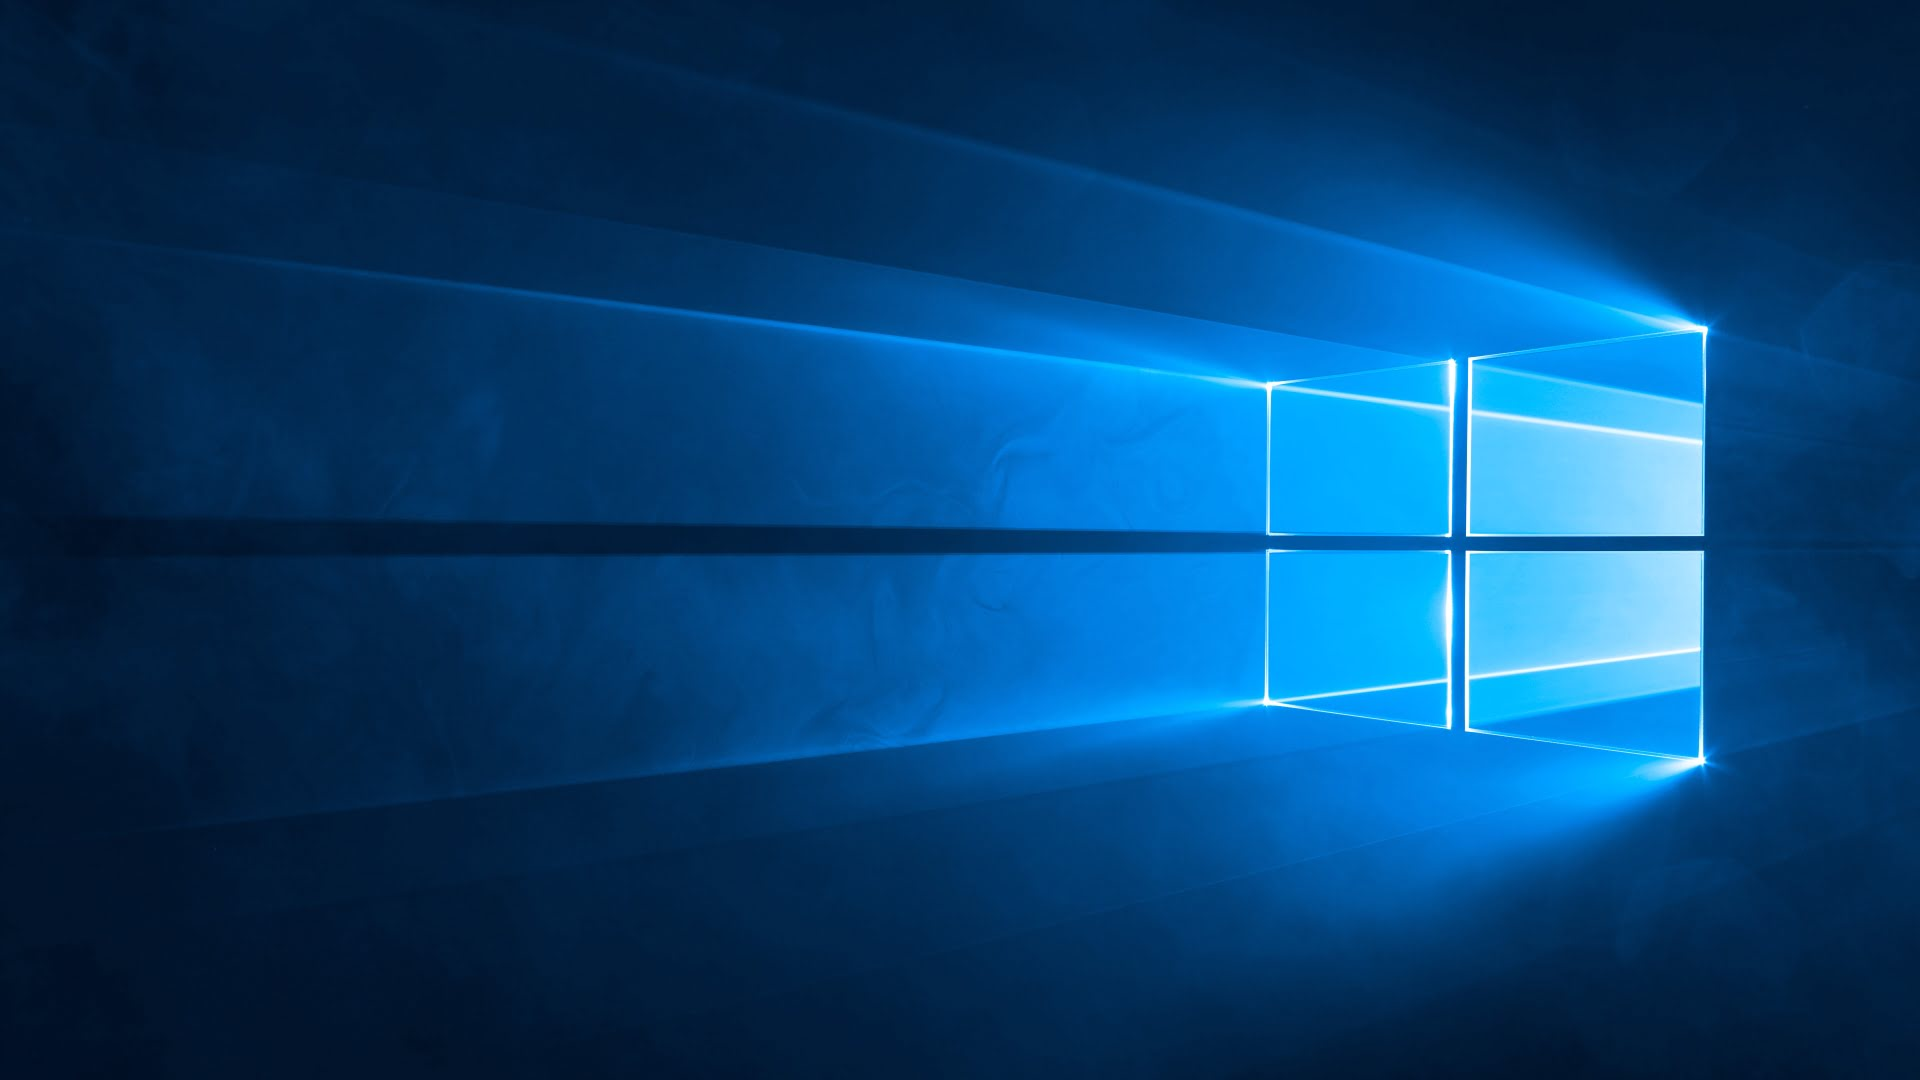 Windows 8.1 support end date in Sydney